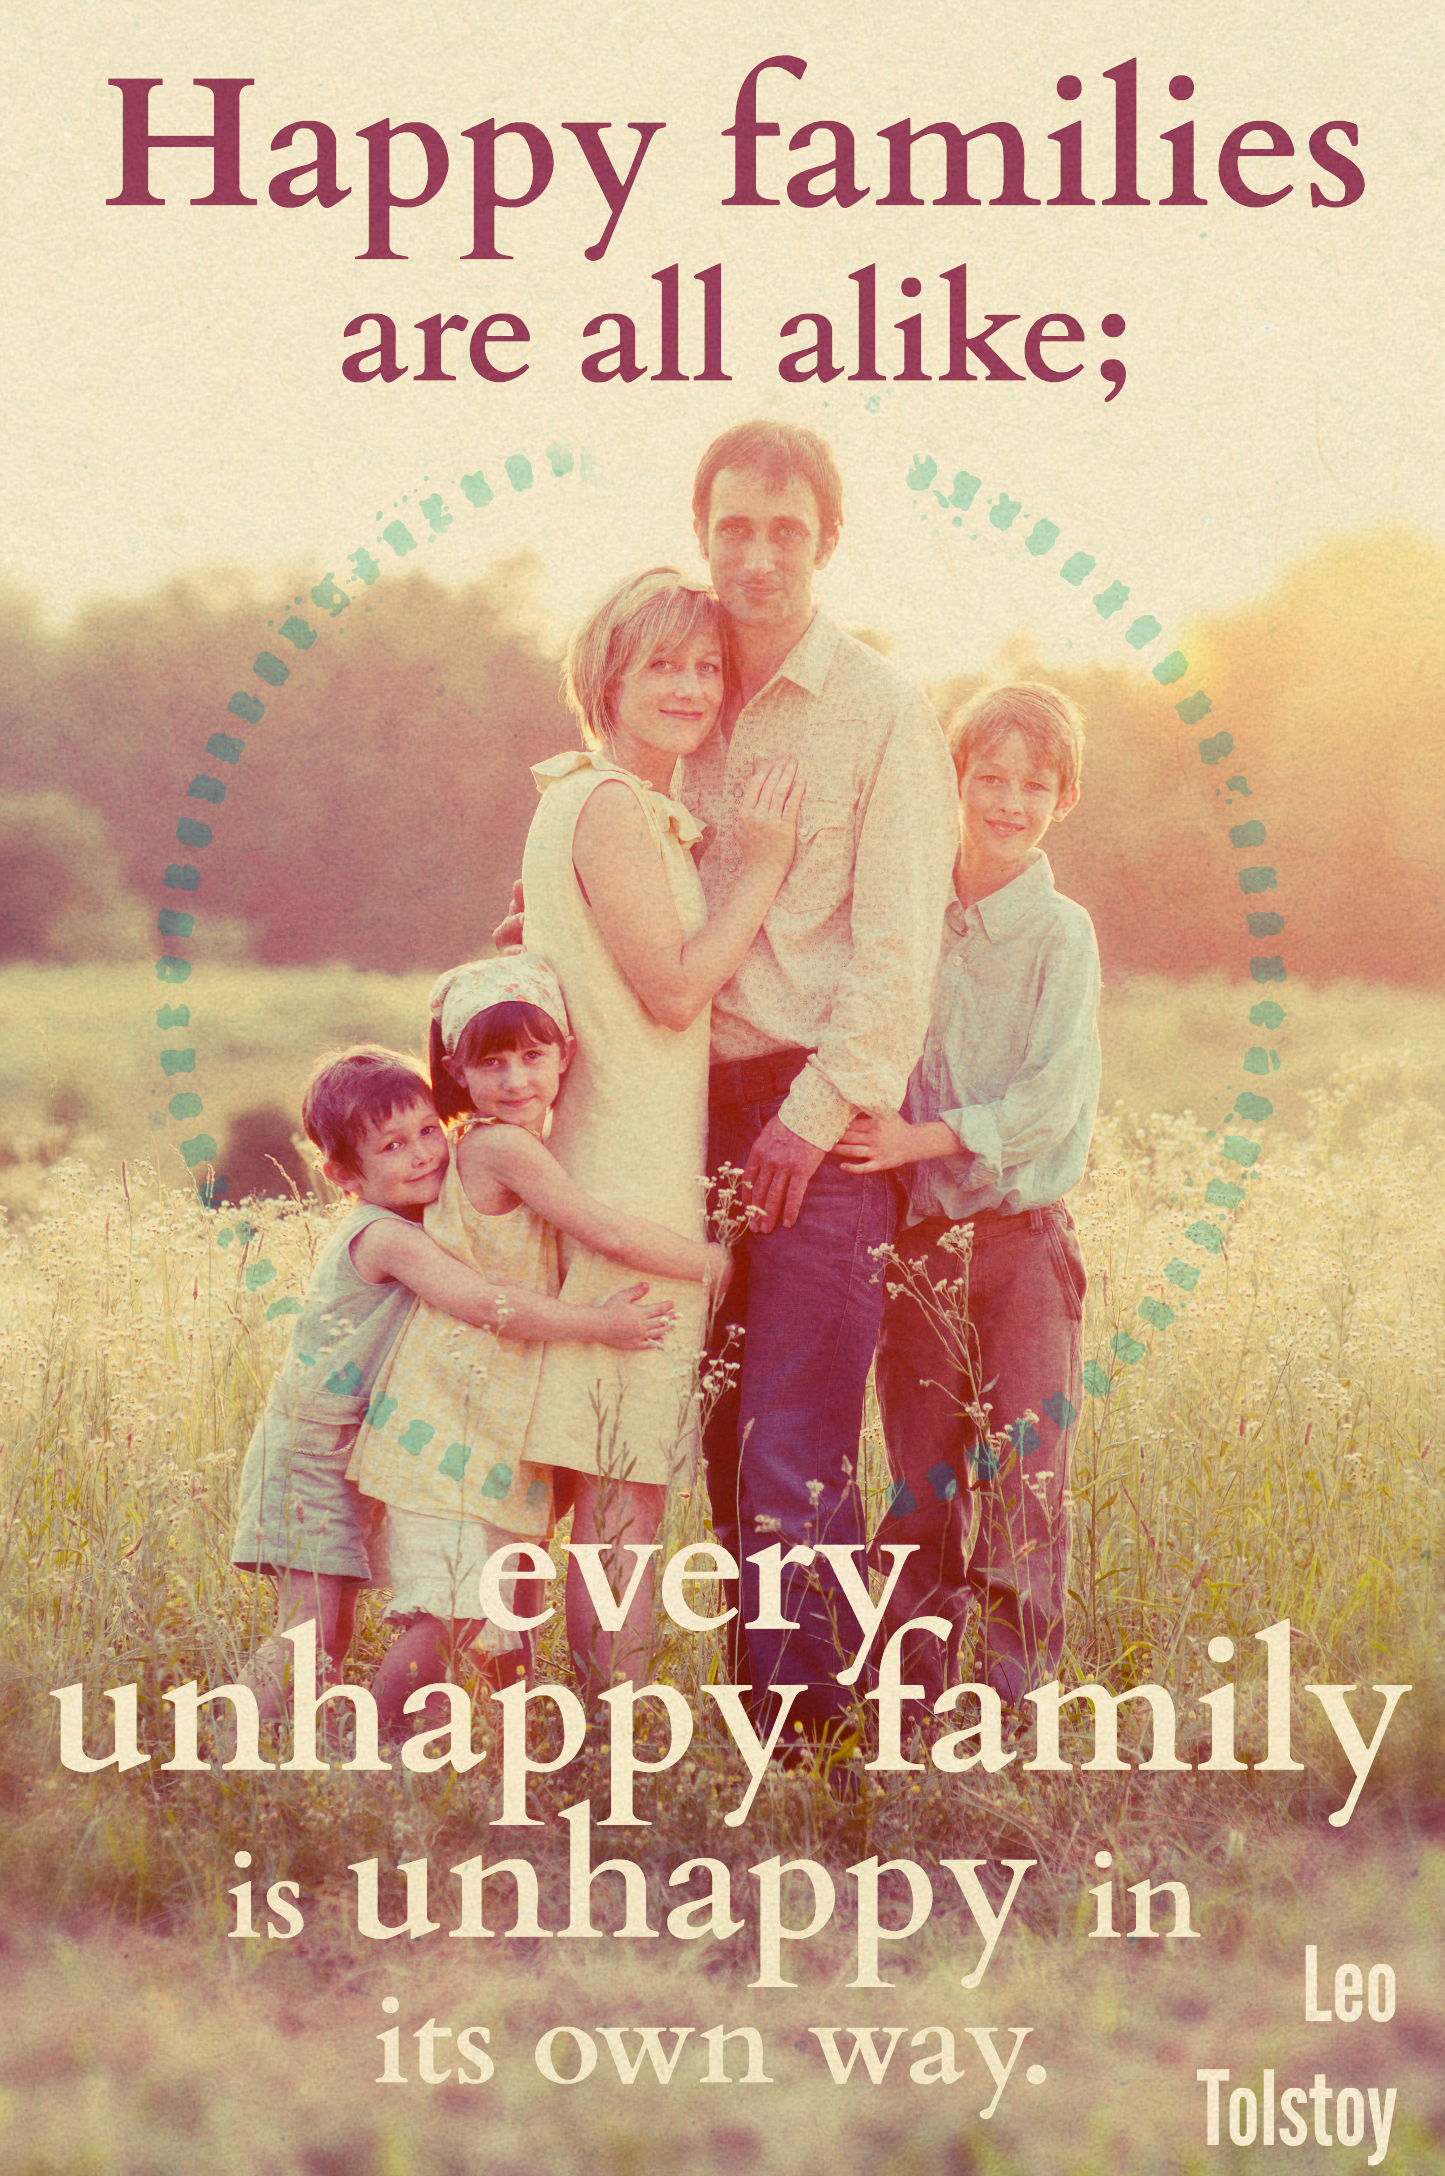 Happy families are all alike. The secret to their